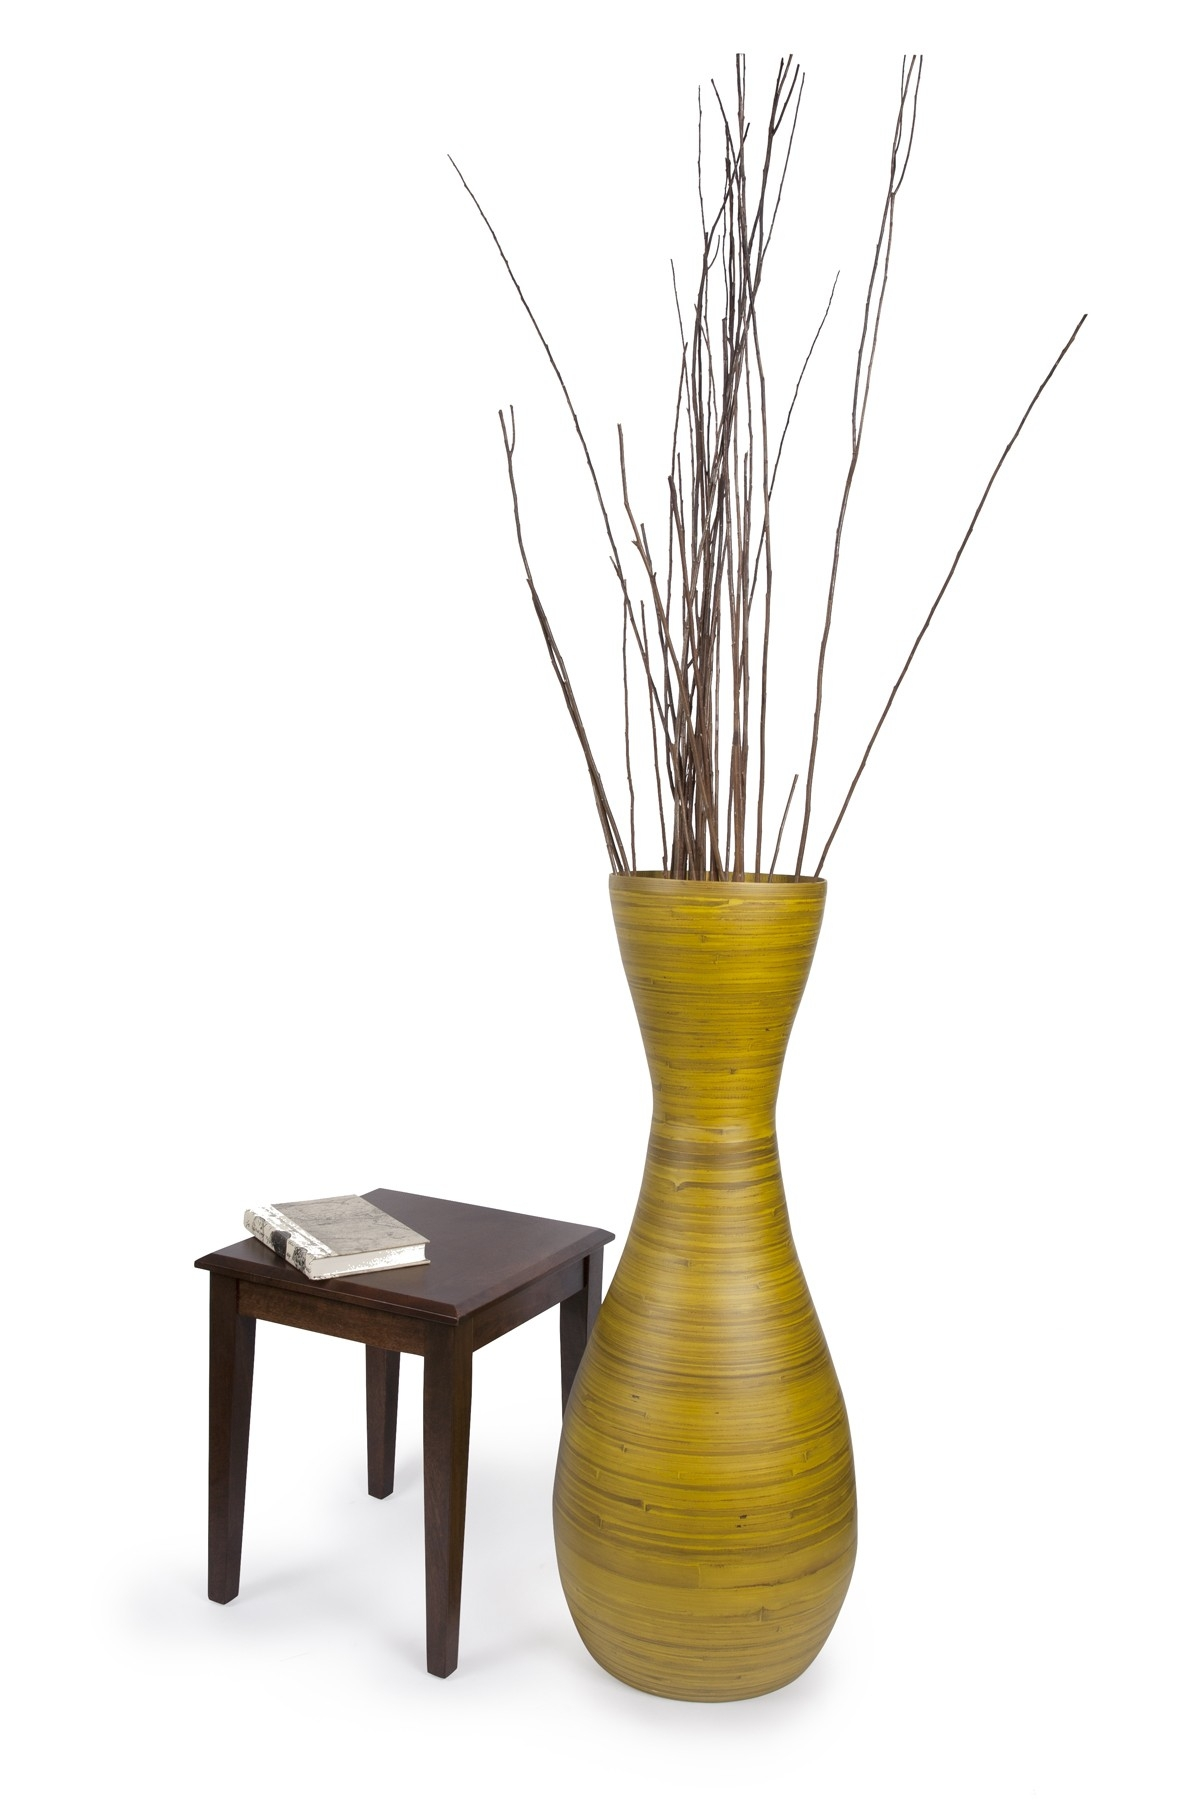 Extra Large Floor Vases | Where to Buy Floor Vases | Large Modern Floor Vases